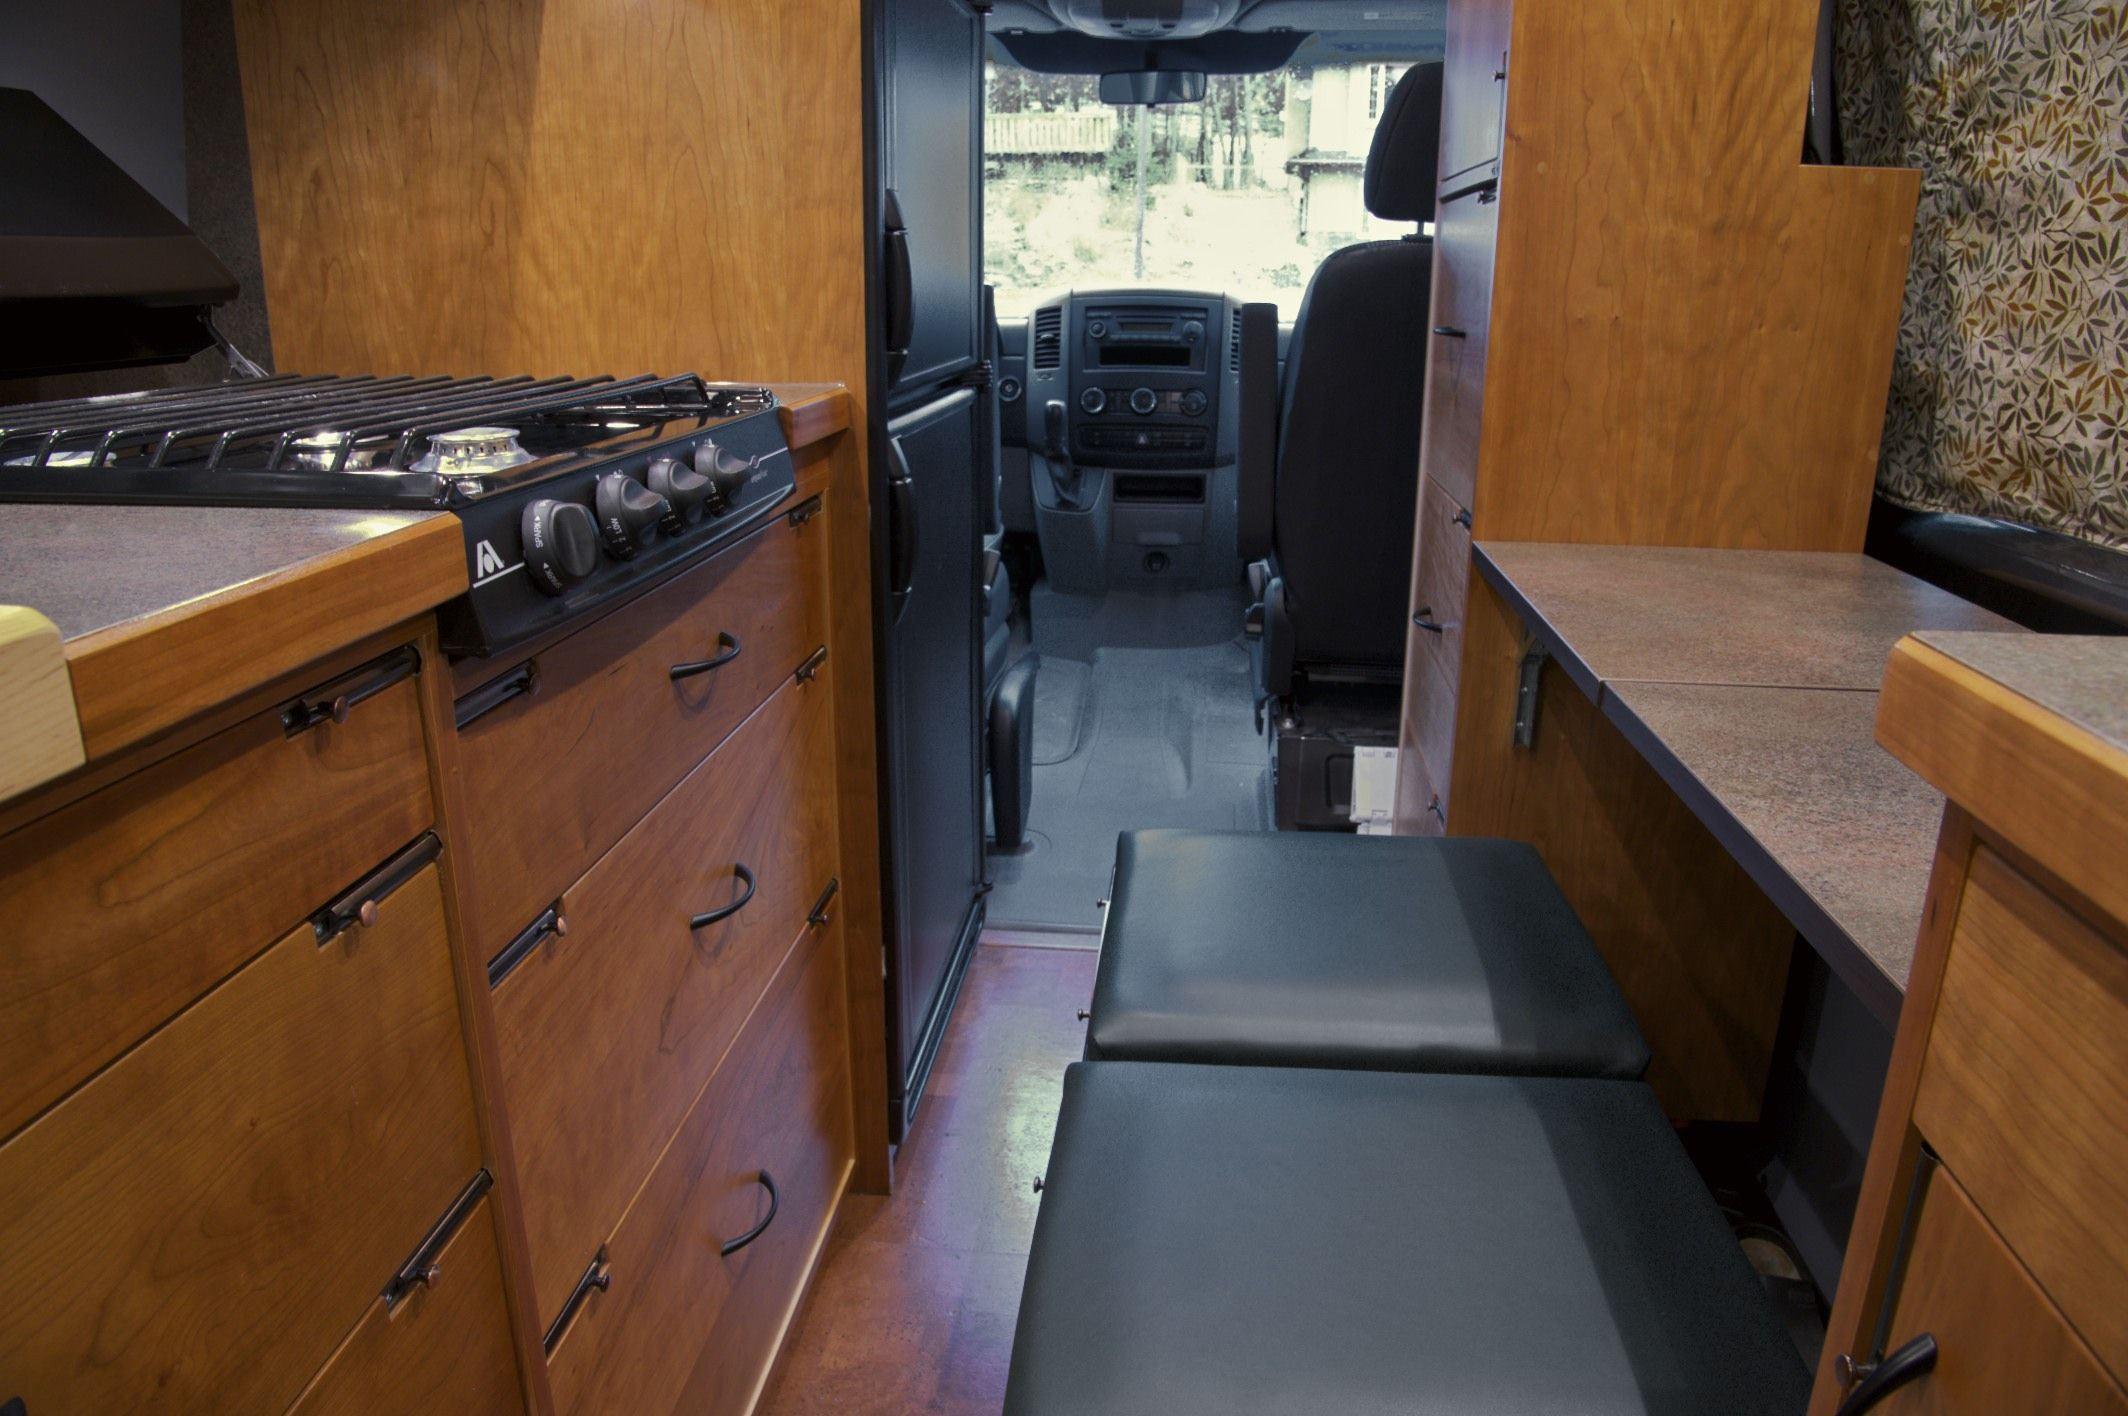 Sprinter RV conversion by Allen Sutter, looking towards